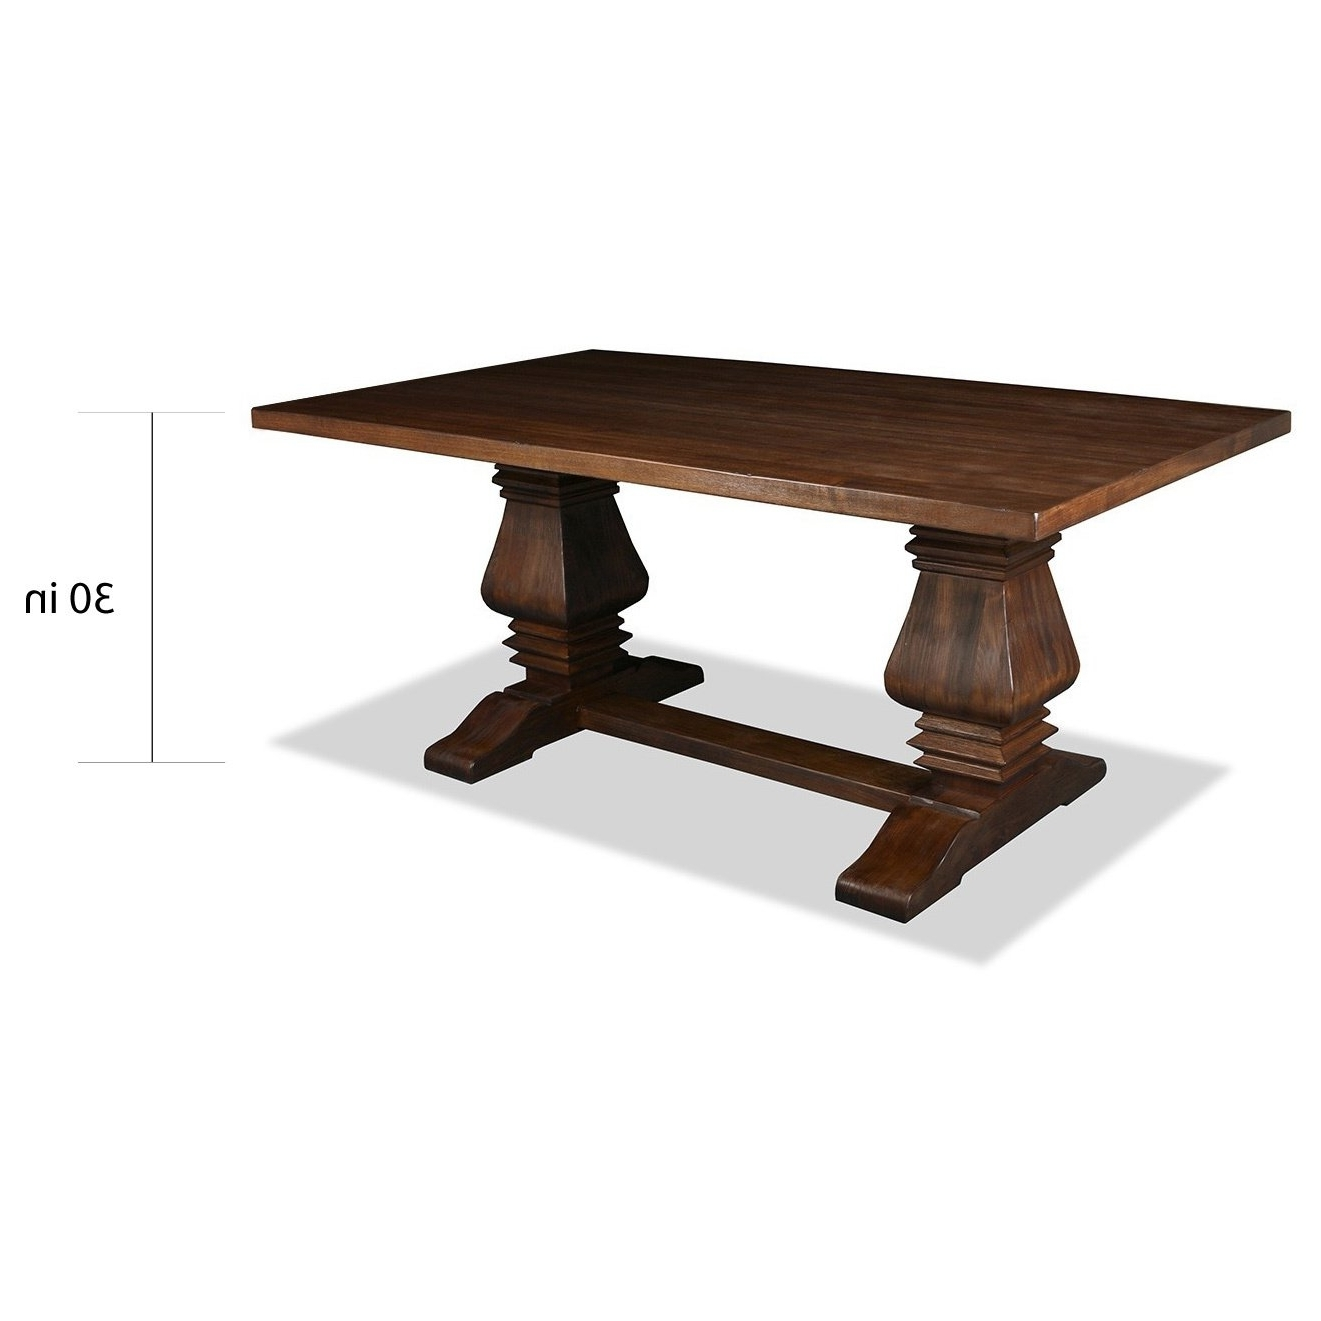 Shop Toscana Reclaimed Wood Rectangular Dining Table – Free Shipping With Regard To Well Known Toscana Dining Tables (View 3 of 25)